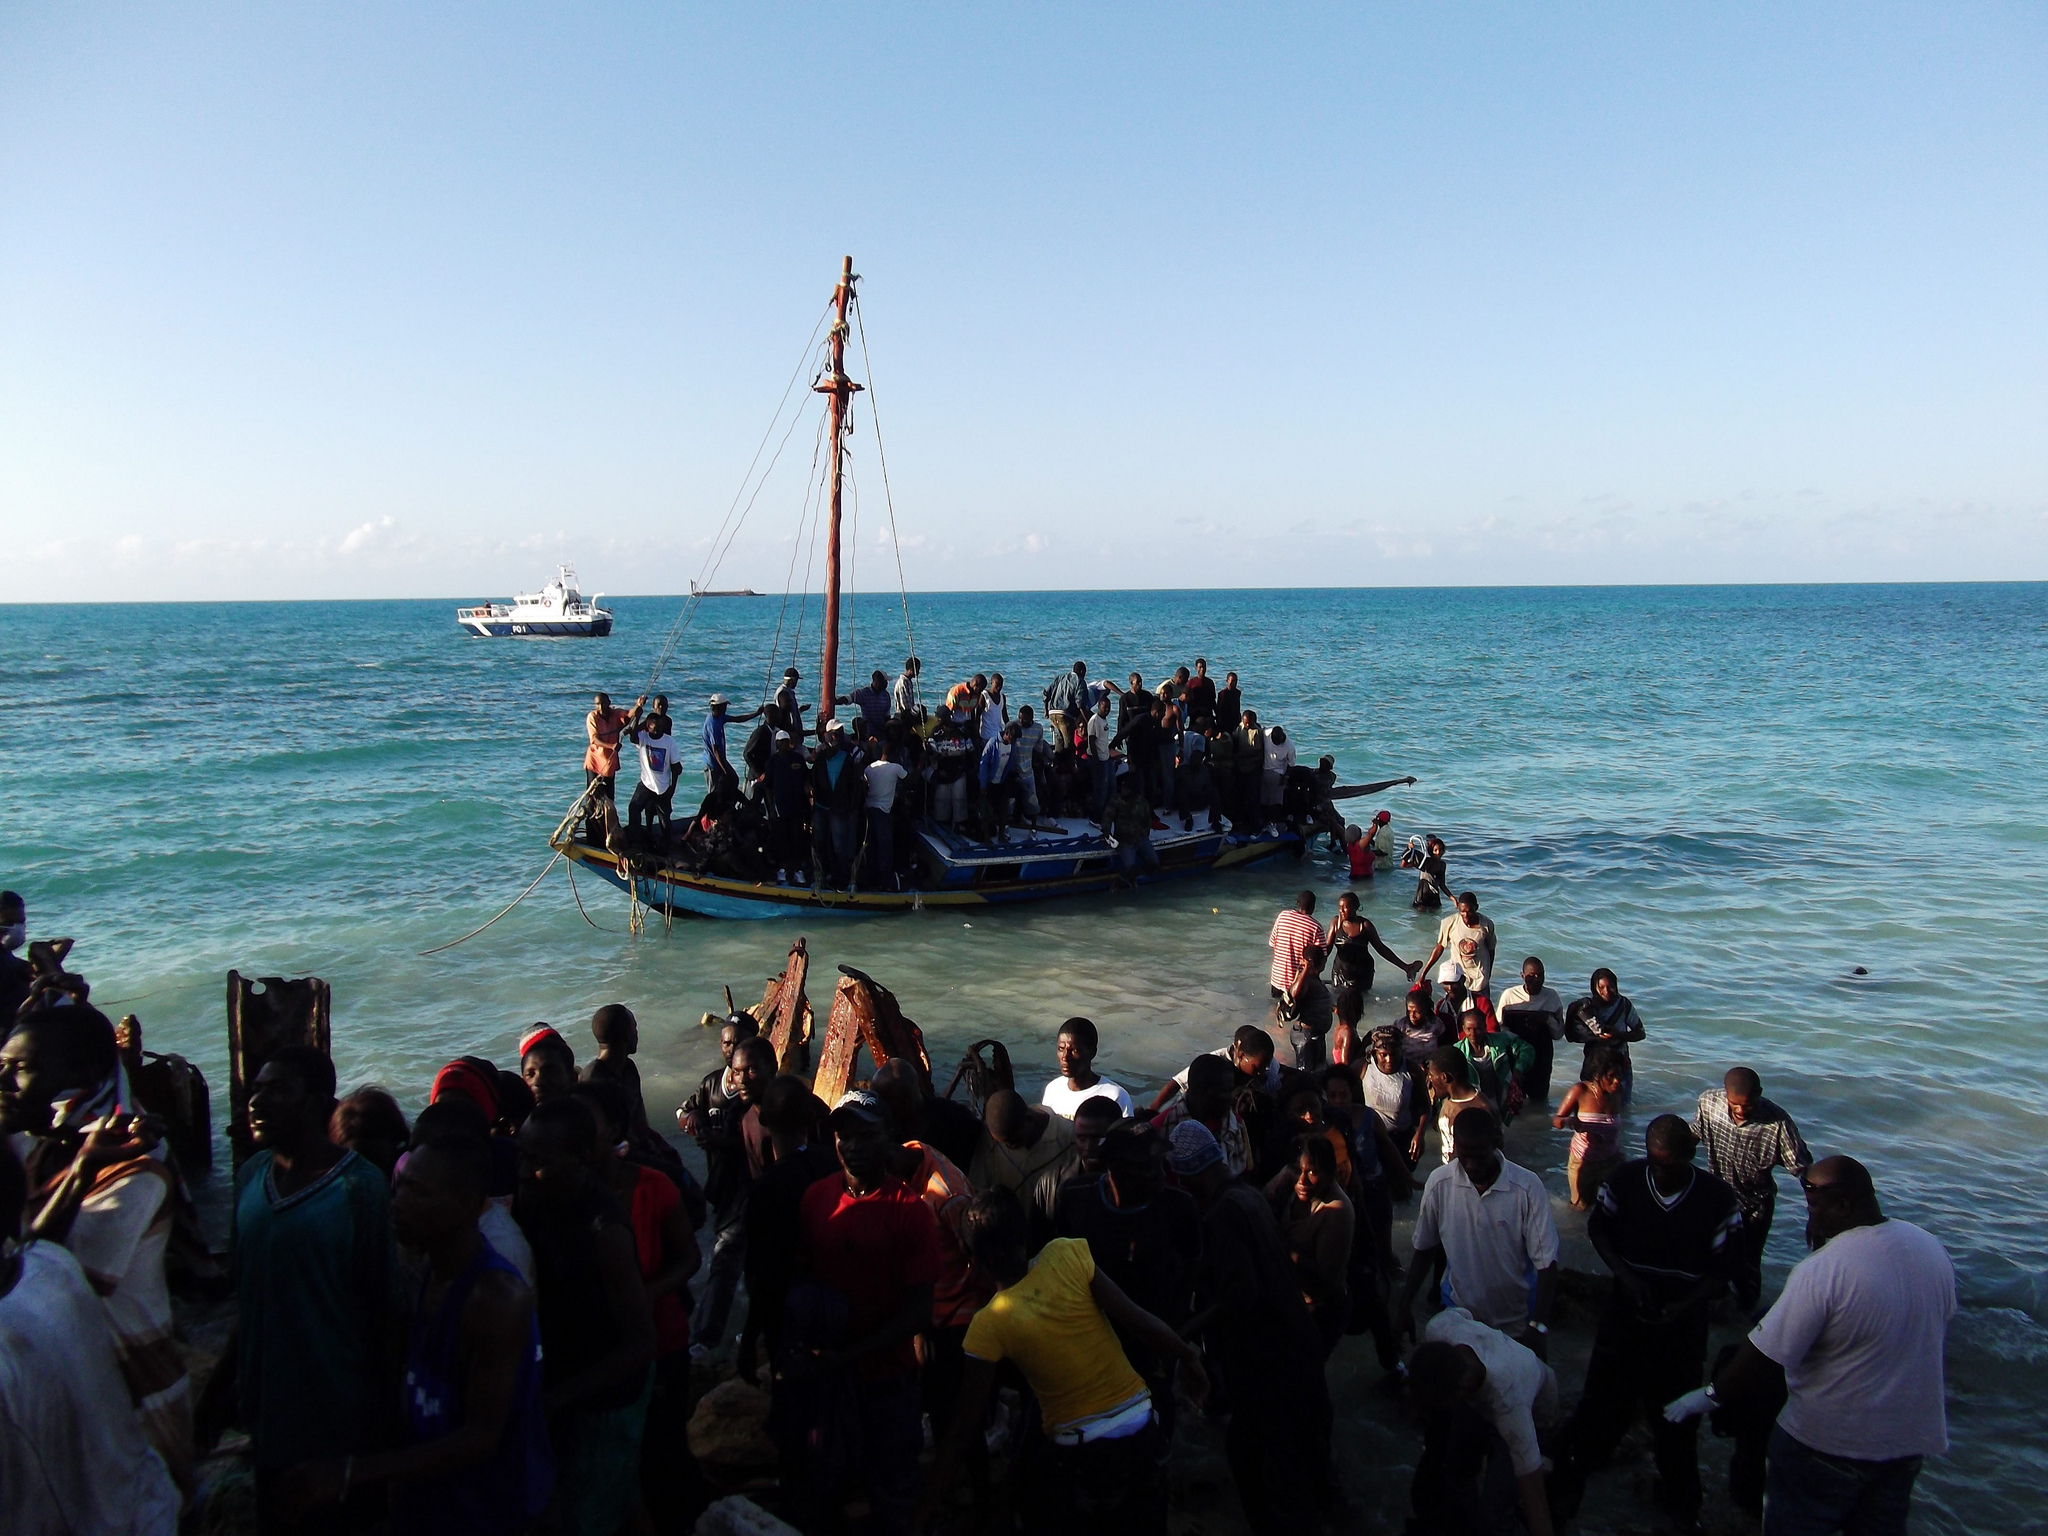 Residents of the Turks and Caicos Islands in the Caribbean assist passengers on an overcrowded sloop. The boat had just arrived from Haiti carrying 139 people. UNHCR / 25 February 2011